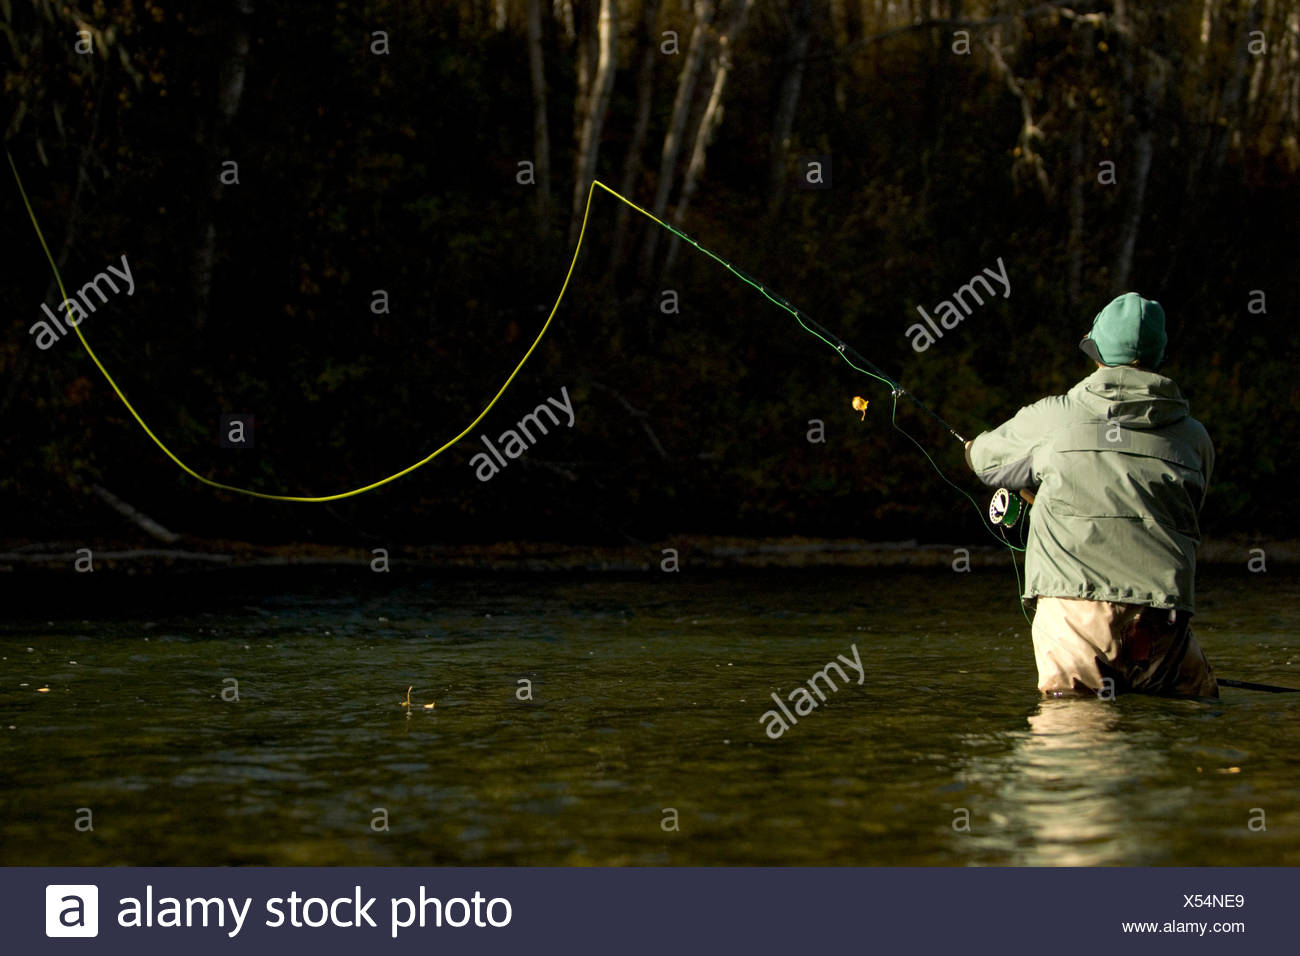 A sport fisherman fly fishing for steelhead trout in the Bulkley River. - Stock Image